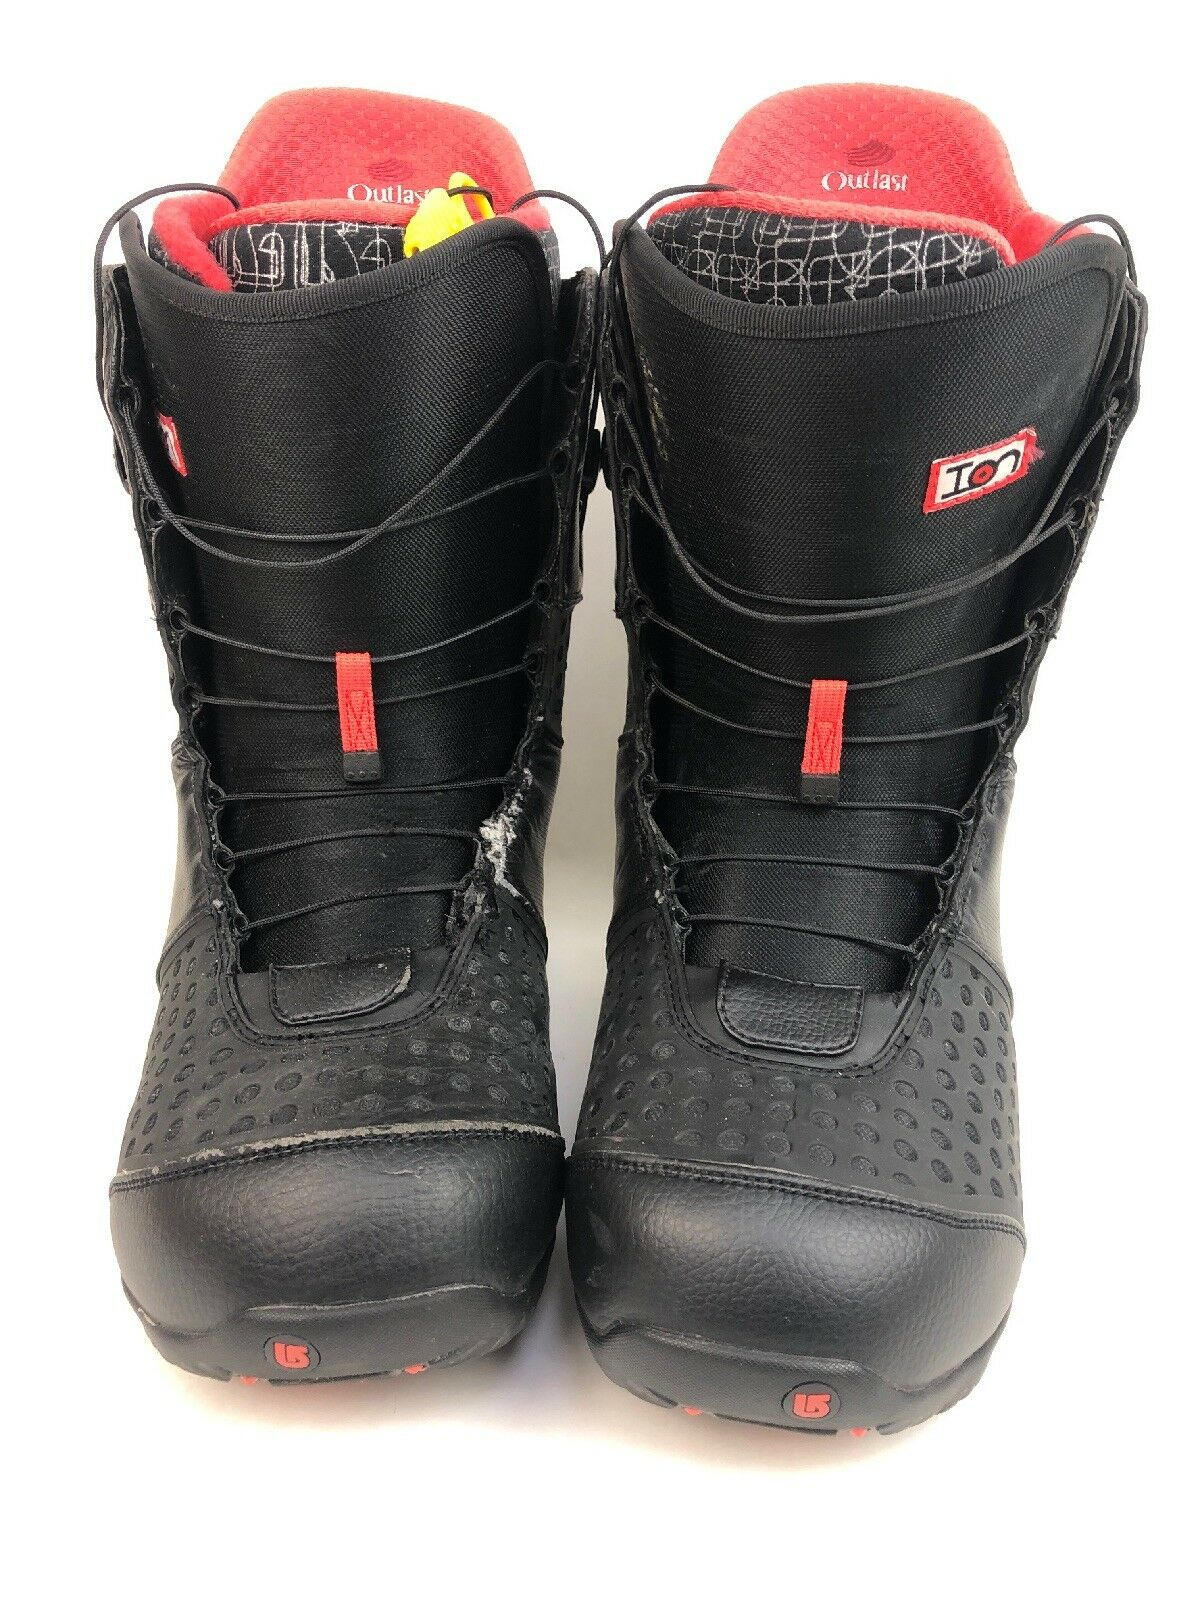 Burton Ion Men's Snowboard Boots Size 12.0 - Fast Shipping -Excellent Condition